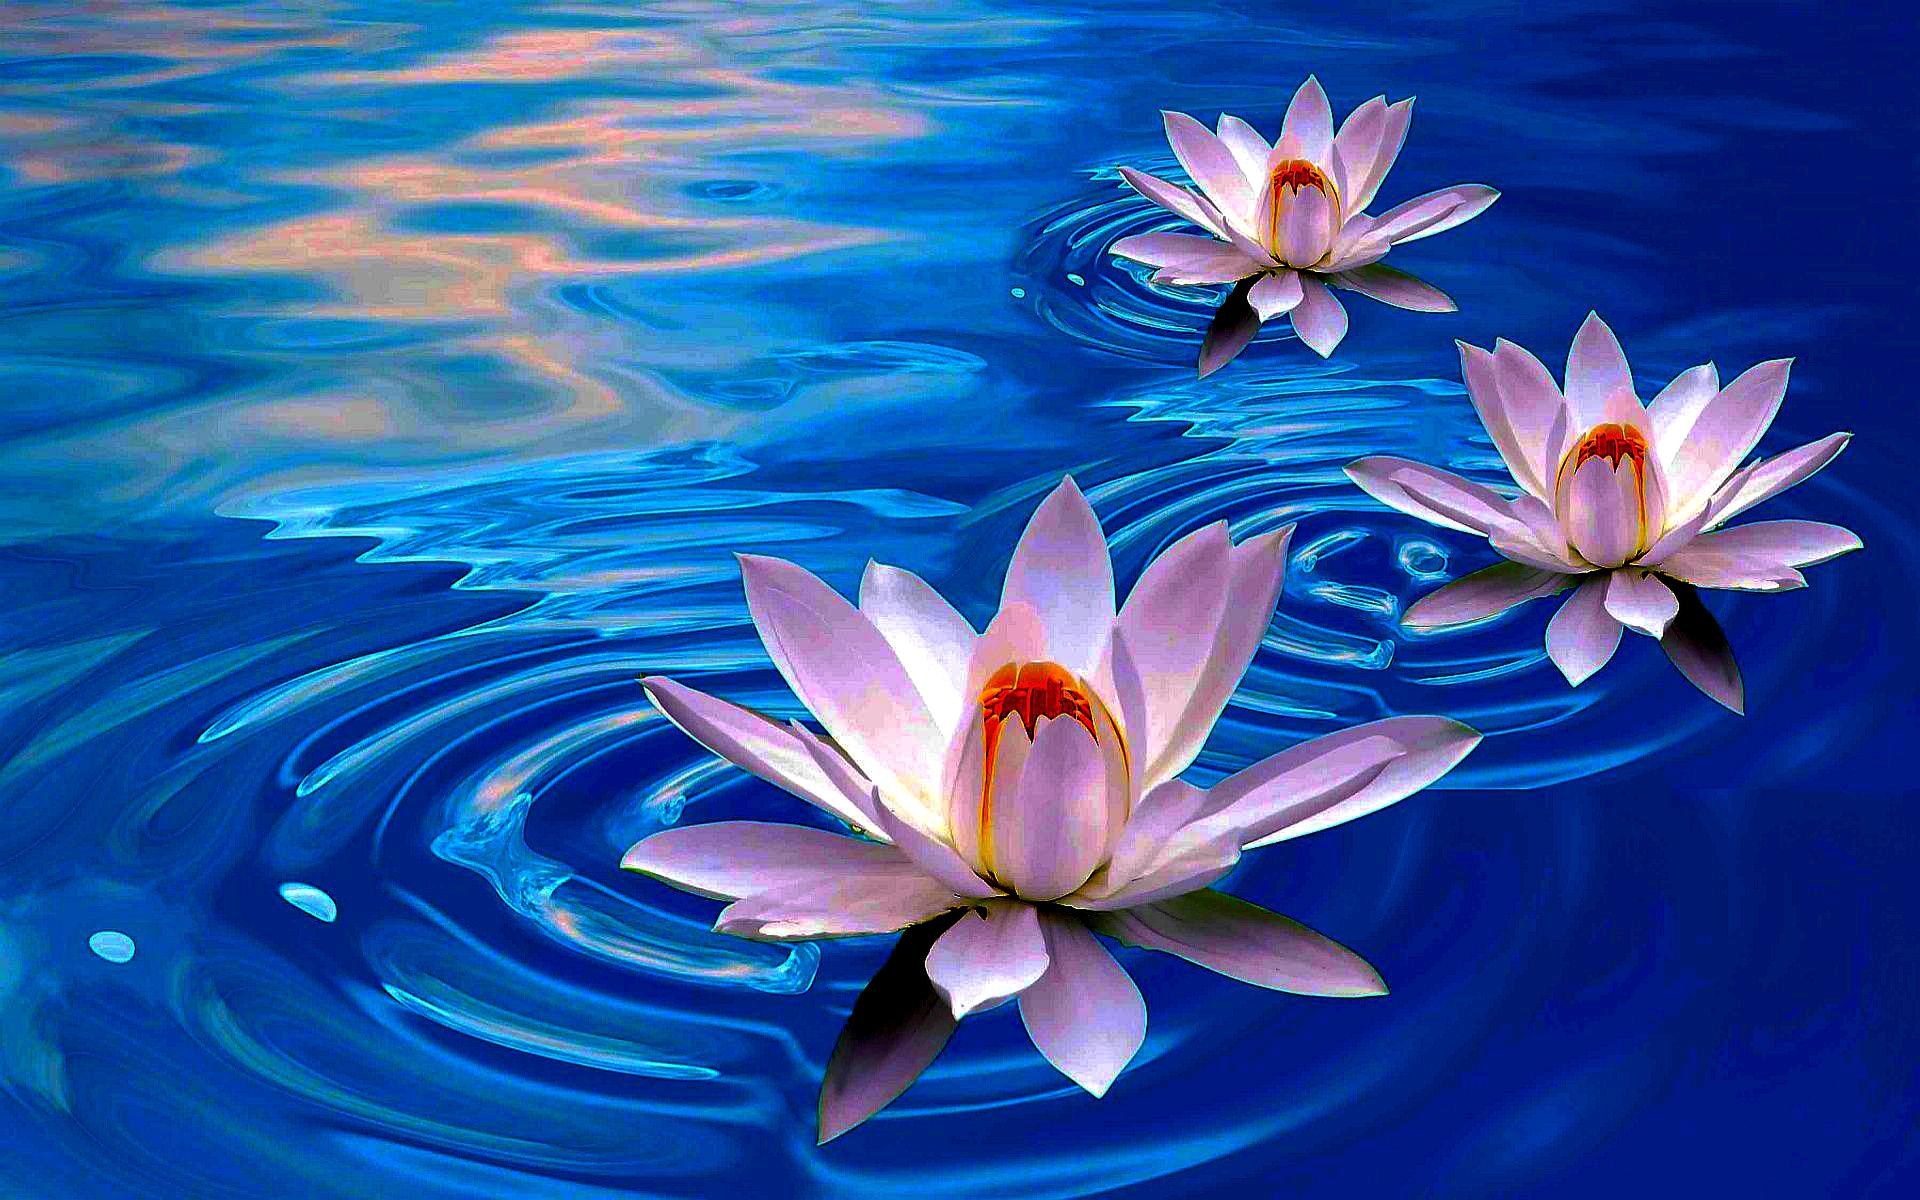 Best ideas about lotus flower wallpaper on pinterest lotus 1920x1200 izmirmasajfo Choice Image